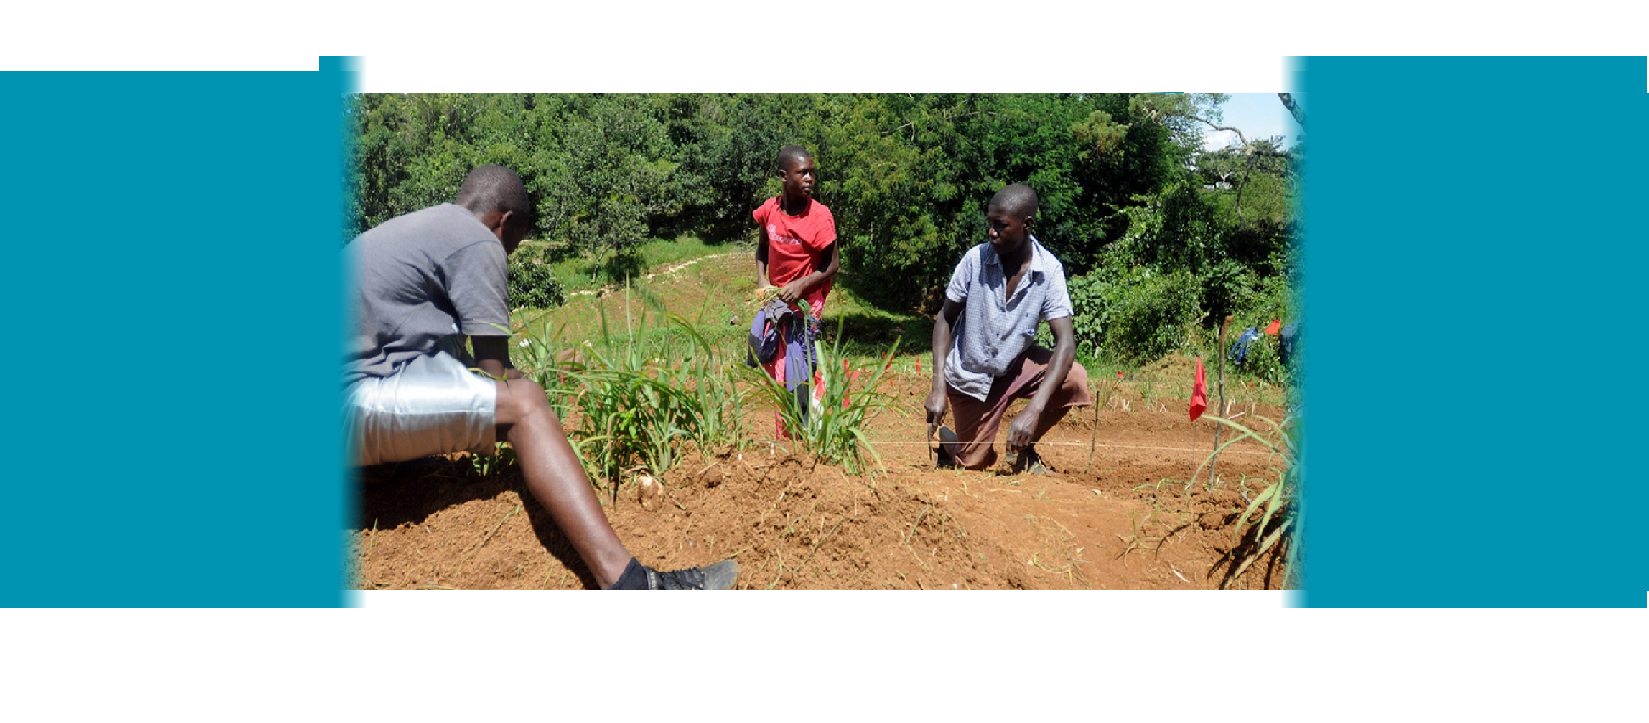 Youth Planting Leeks, Haiti - Photo by USAID